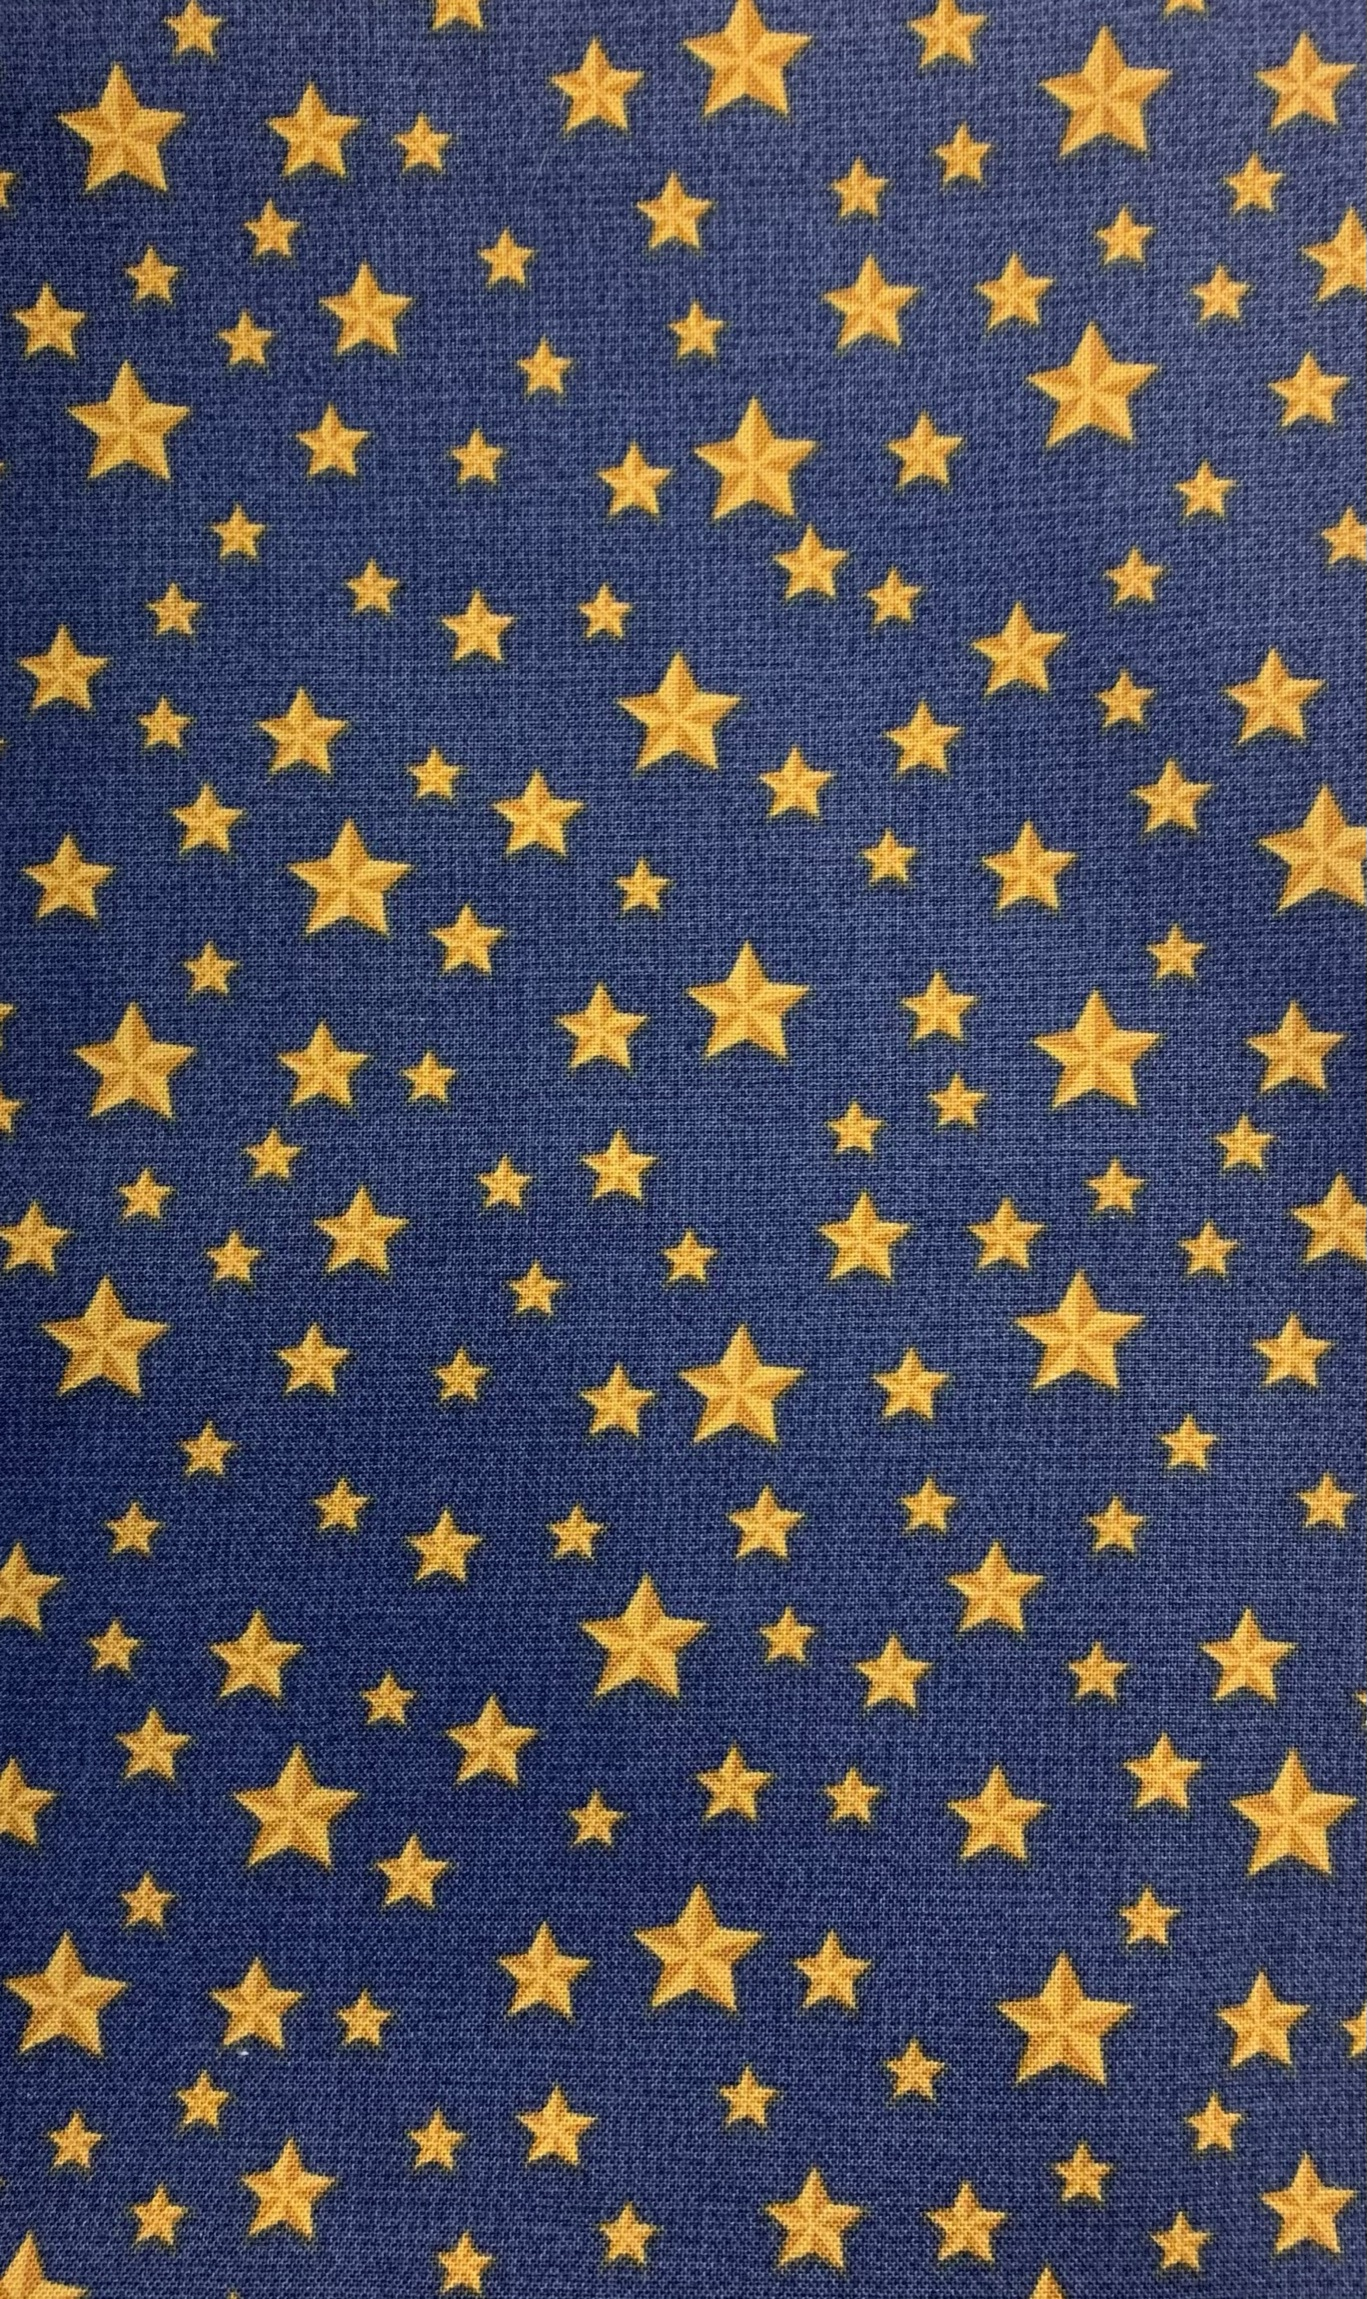 Blue with gold stars